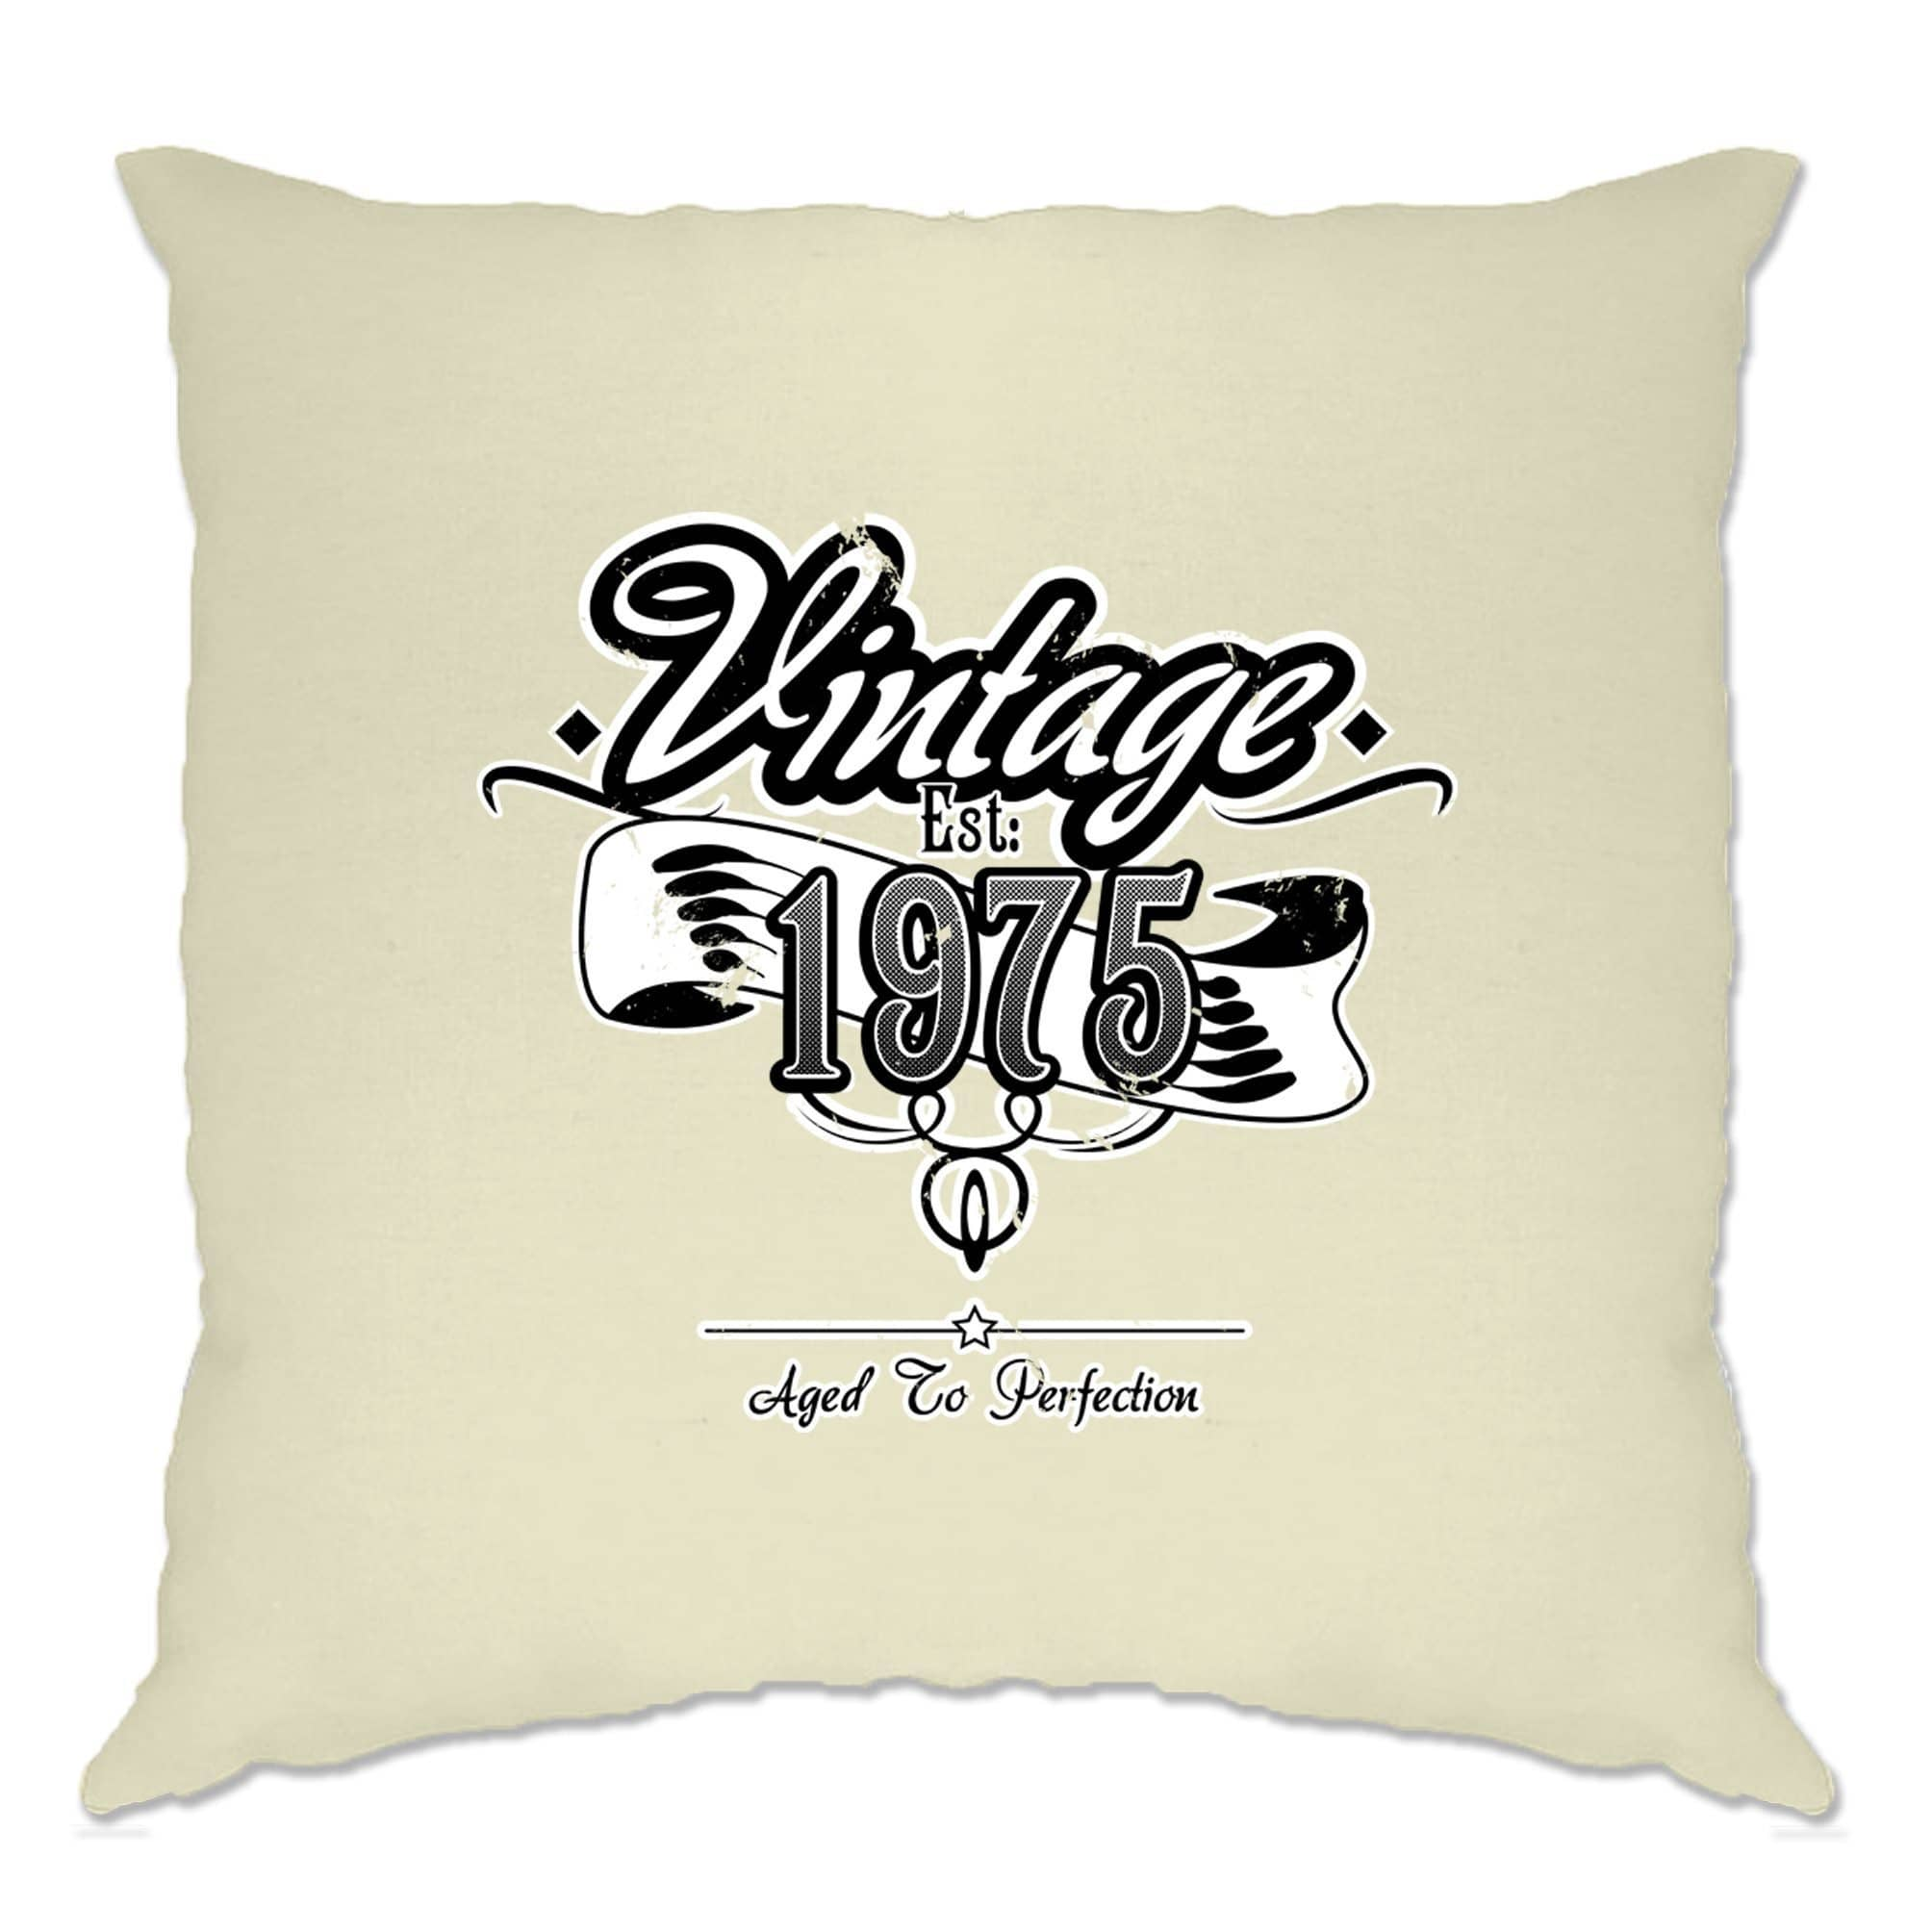 Birthday Cushion Cover Vintage Est. 1975 Aged To Perfection